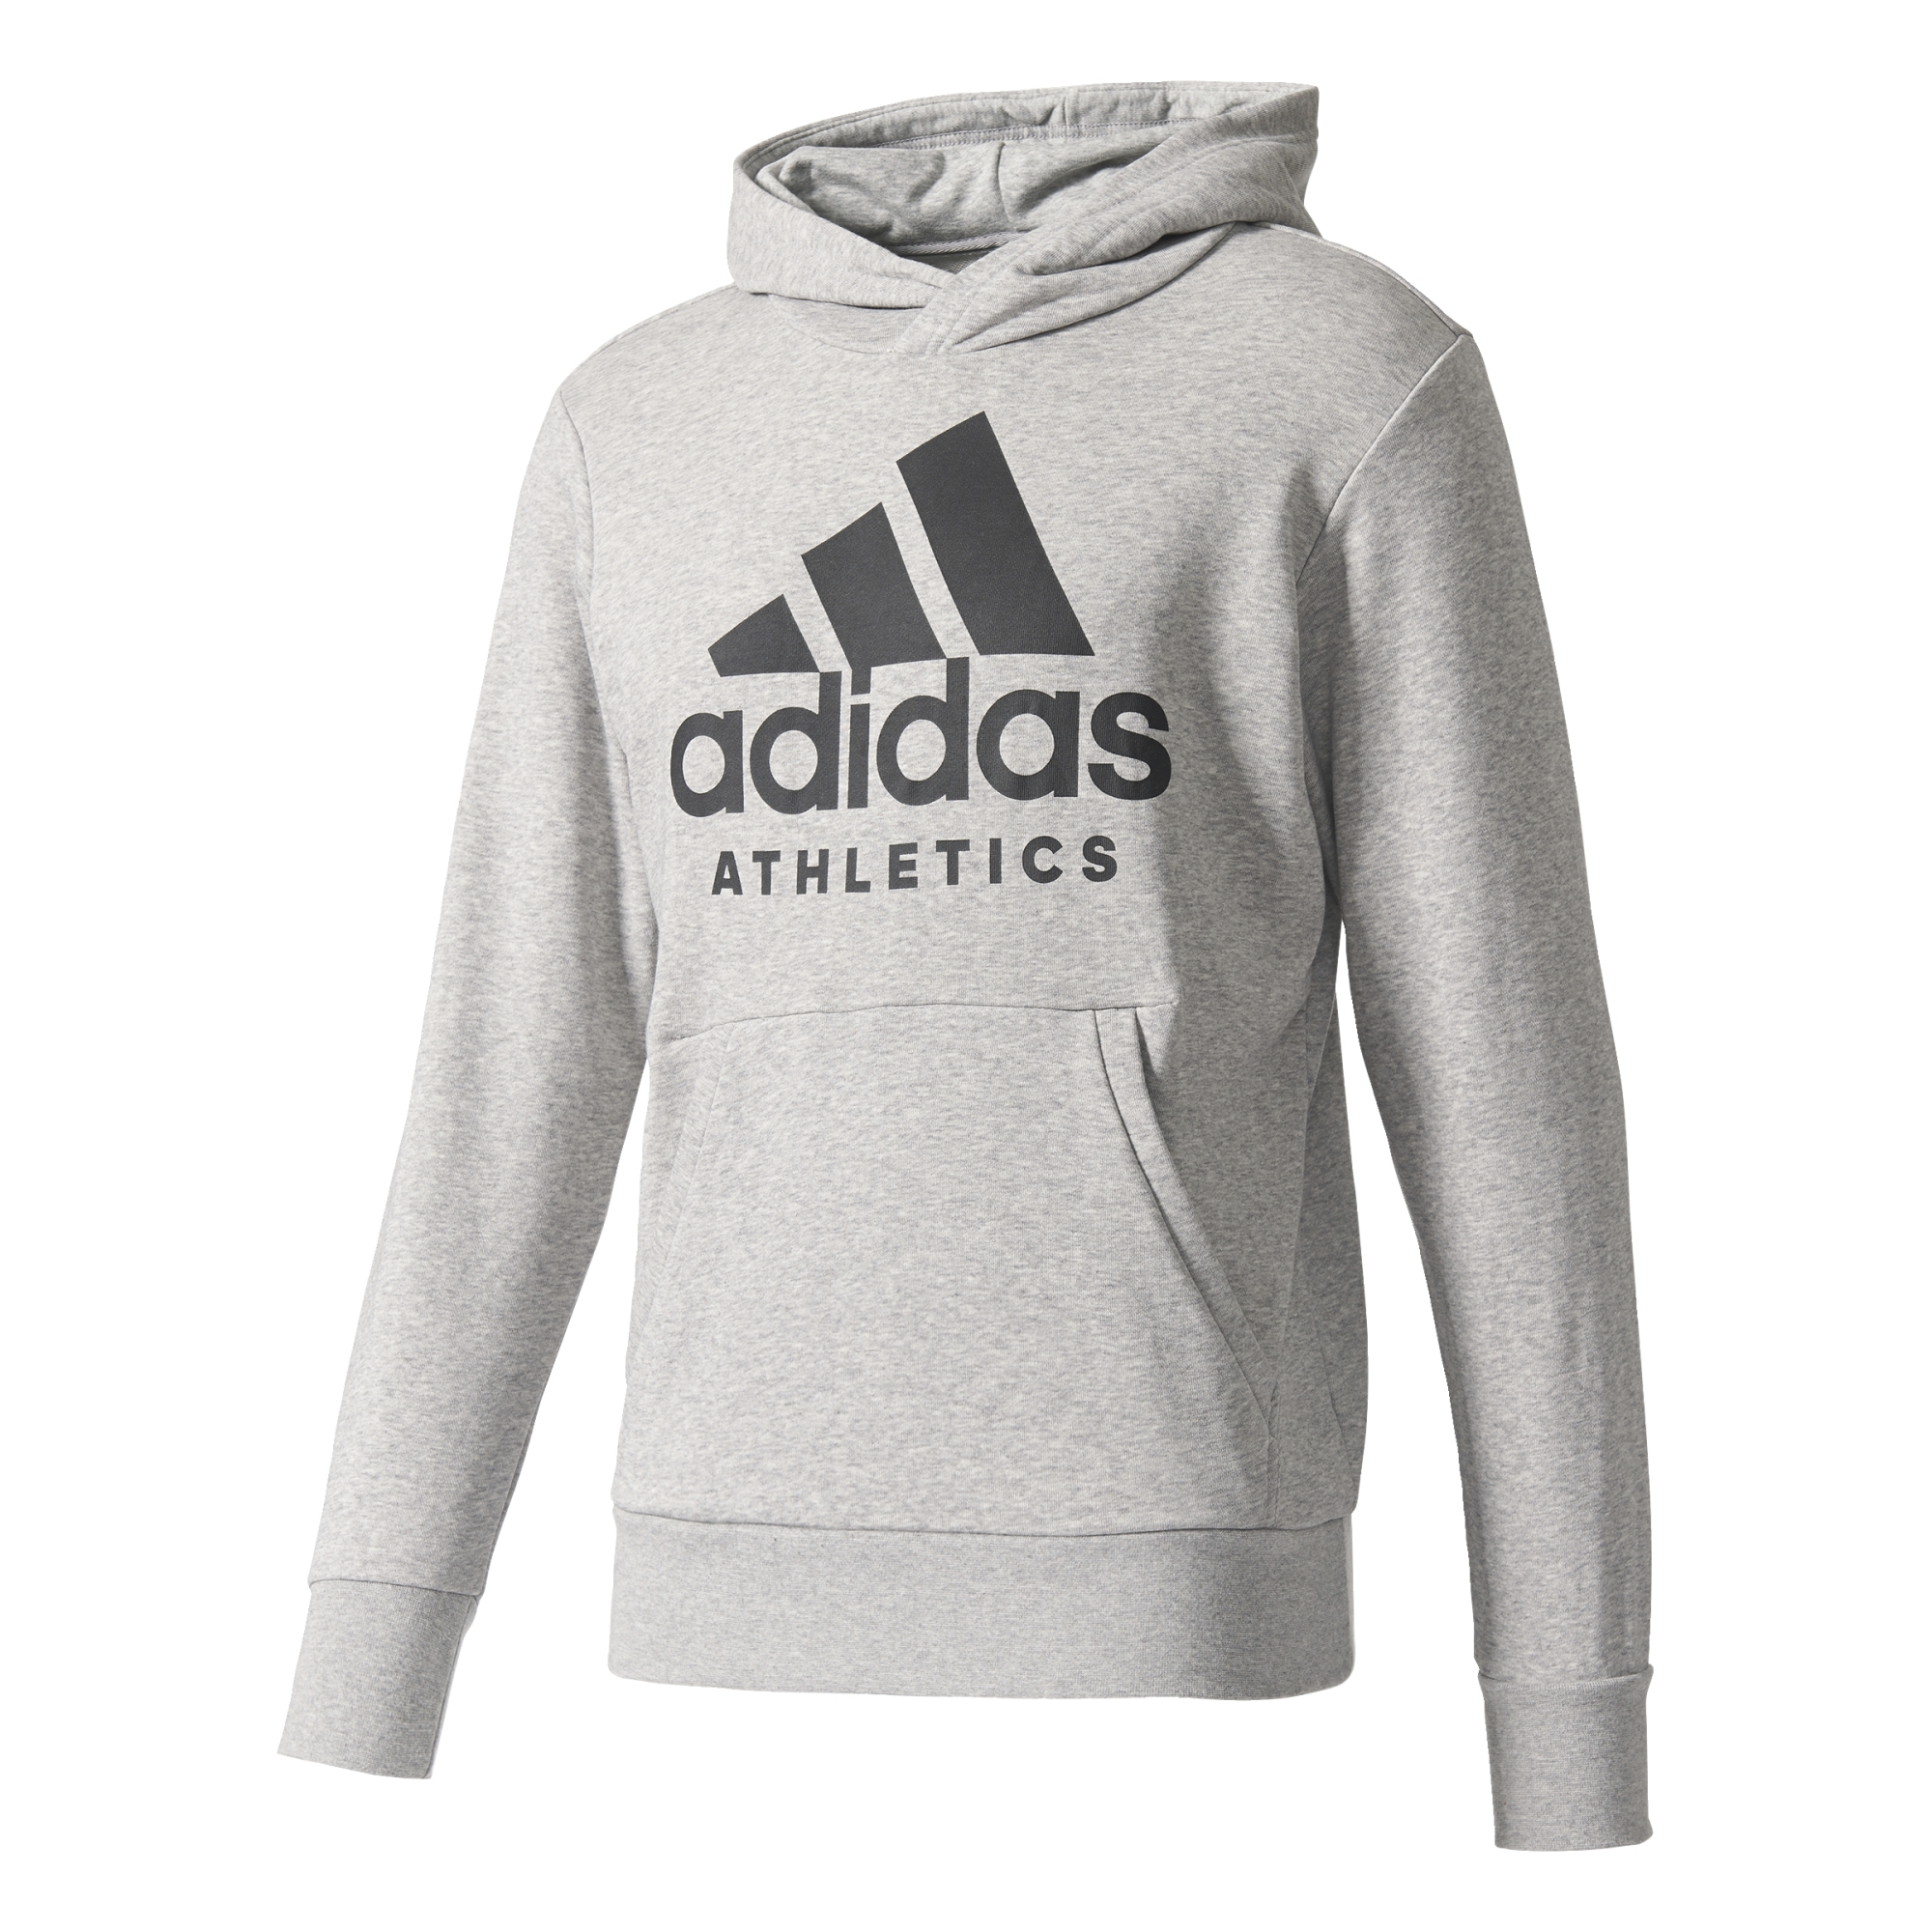 adidas athletics sweat